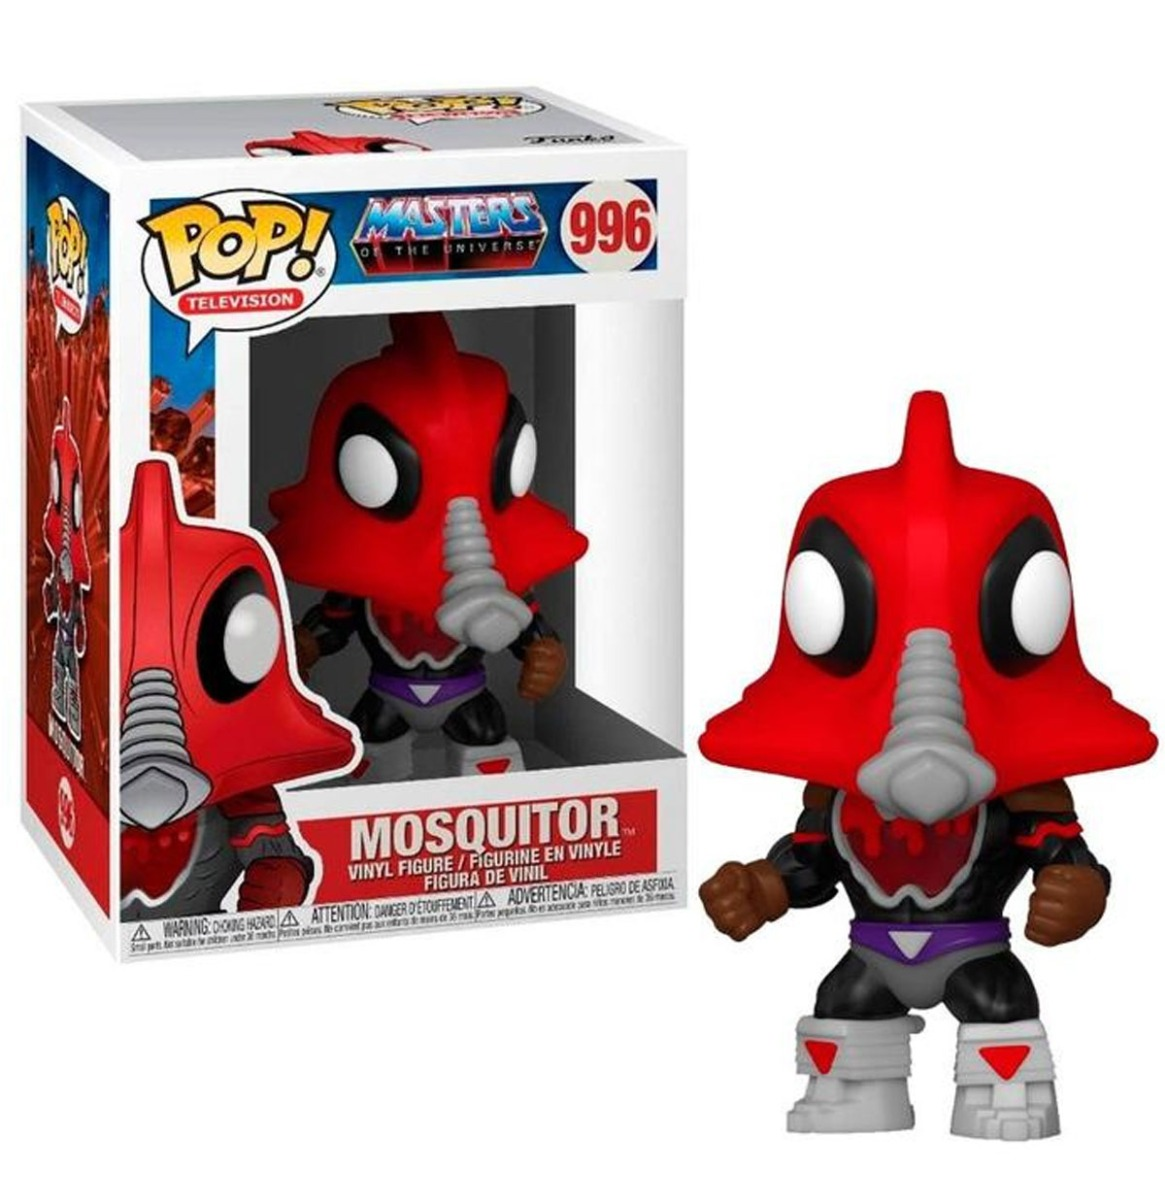 Funko Pop! Cartoons - Masters of the Universe - Mosquitor